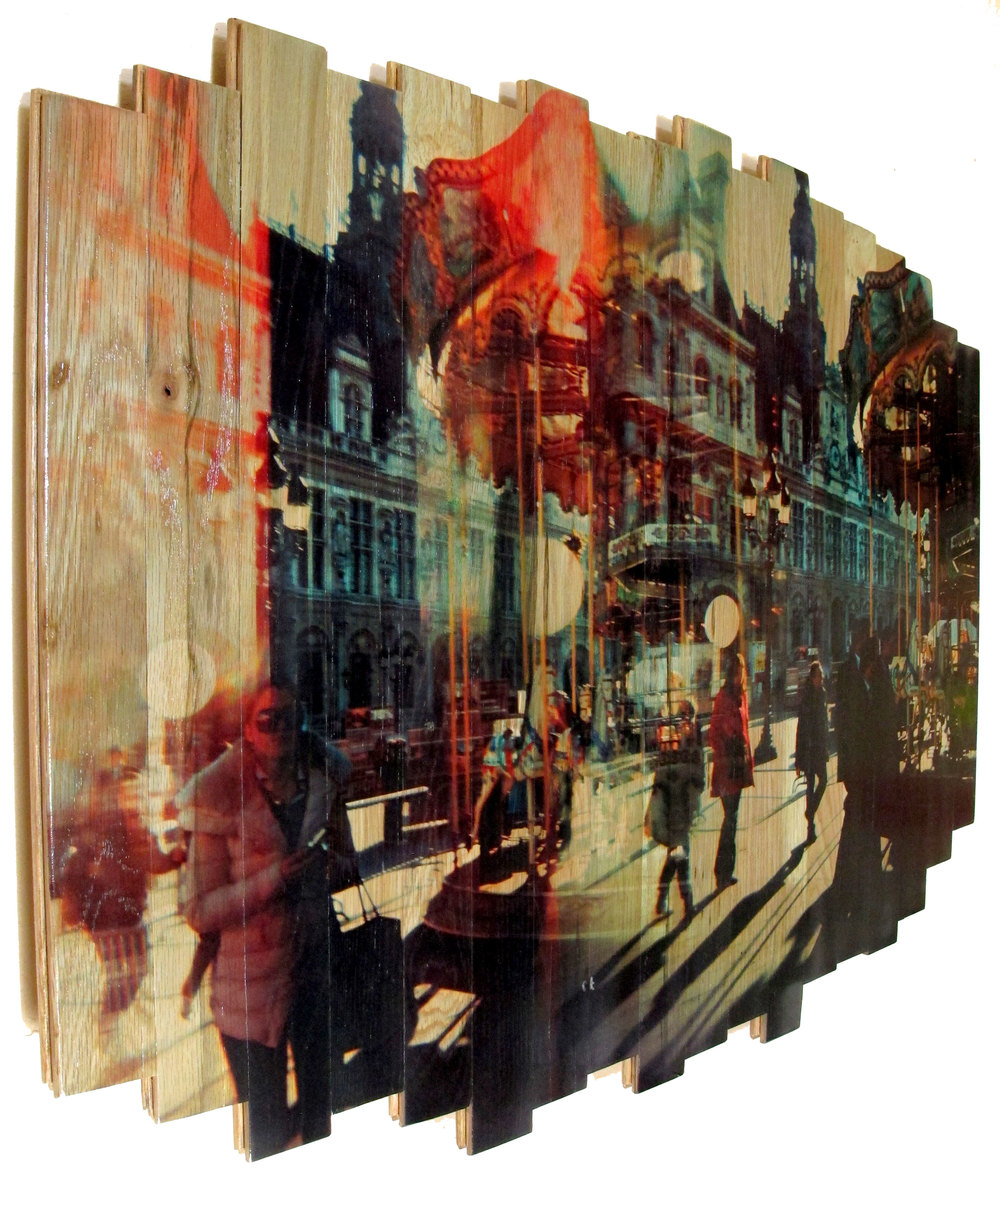 Paris Carousel I , 2016 c print on reclaimed wood floor 29.92 x 41.34 x 1.57 in / 76x105 cm  Unique